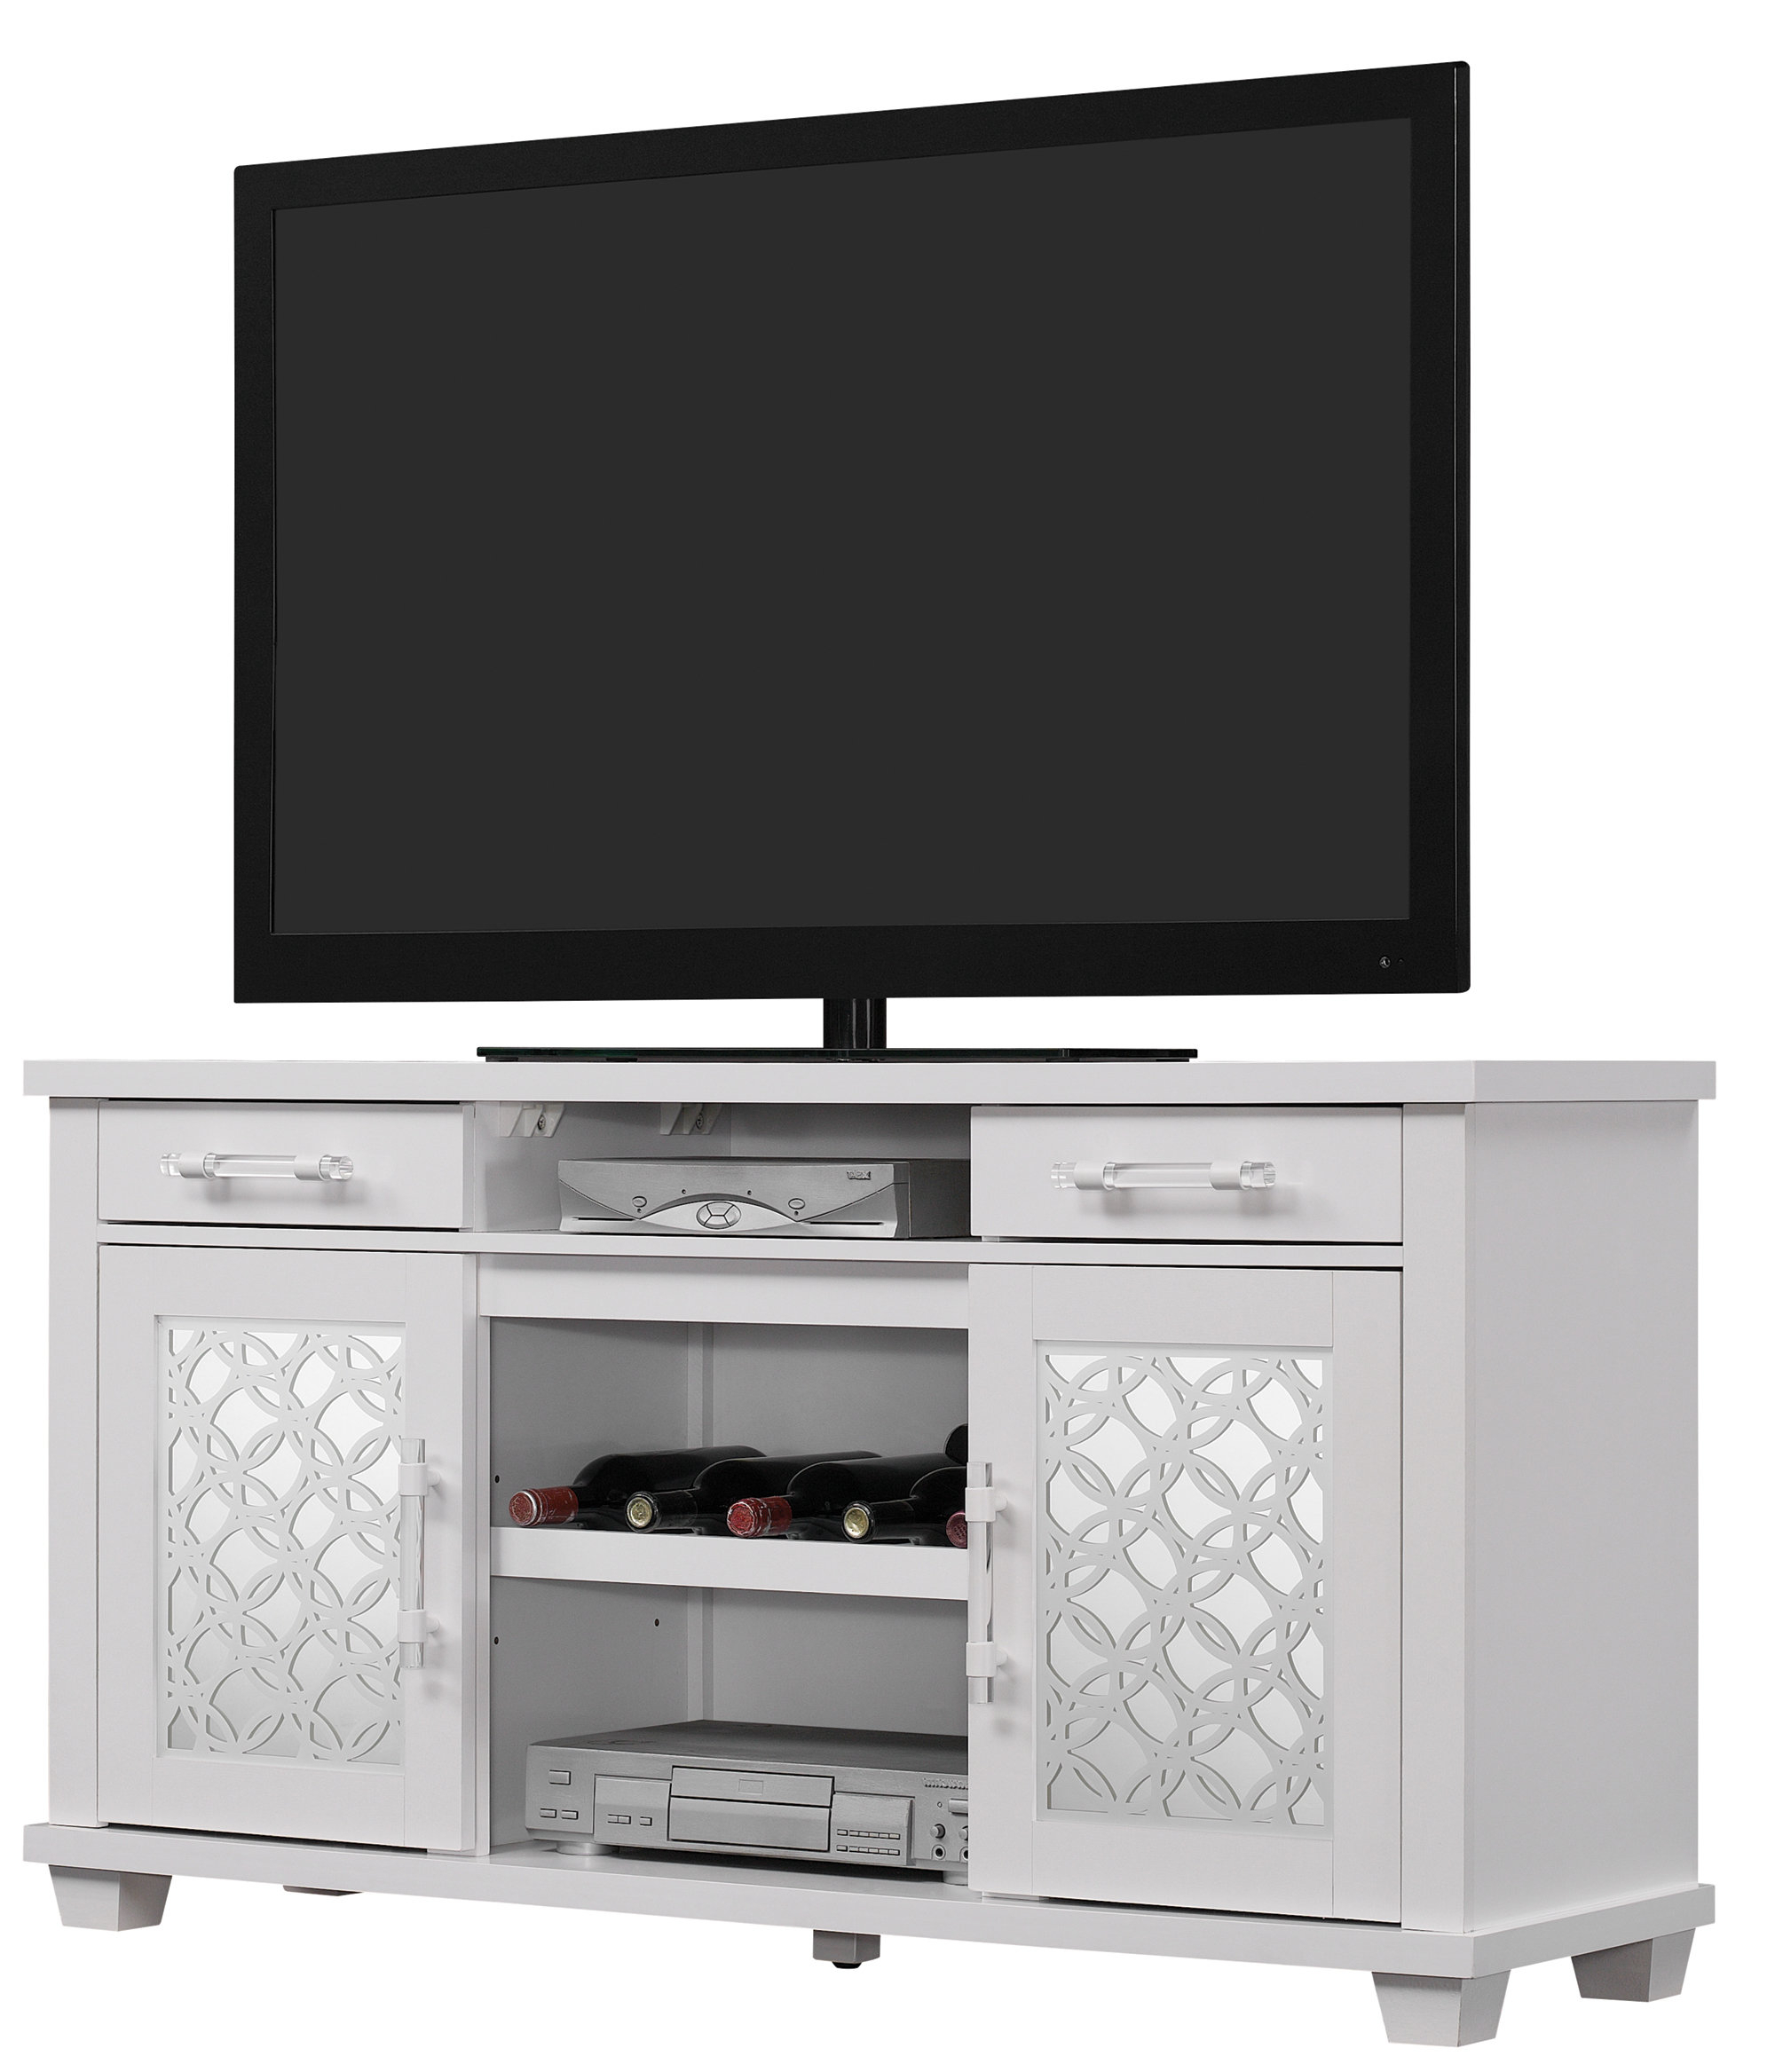 Country Tv Stands Within Most Recently Released French Country Tv Stands You'll Love (View 19 of 20)